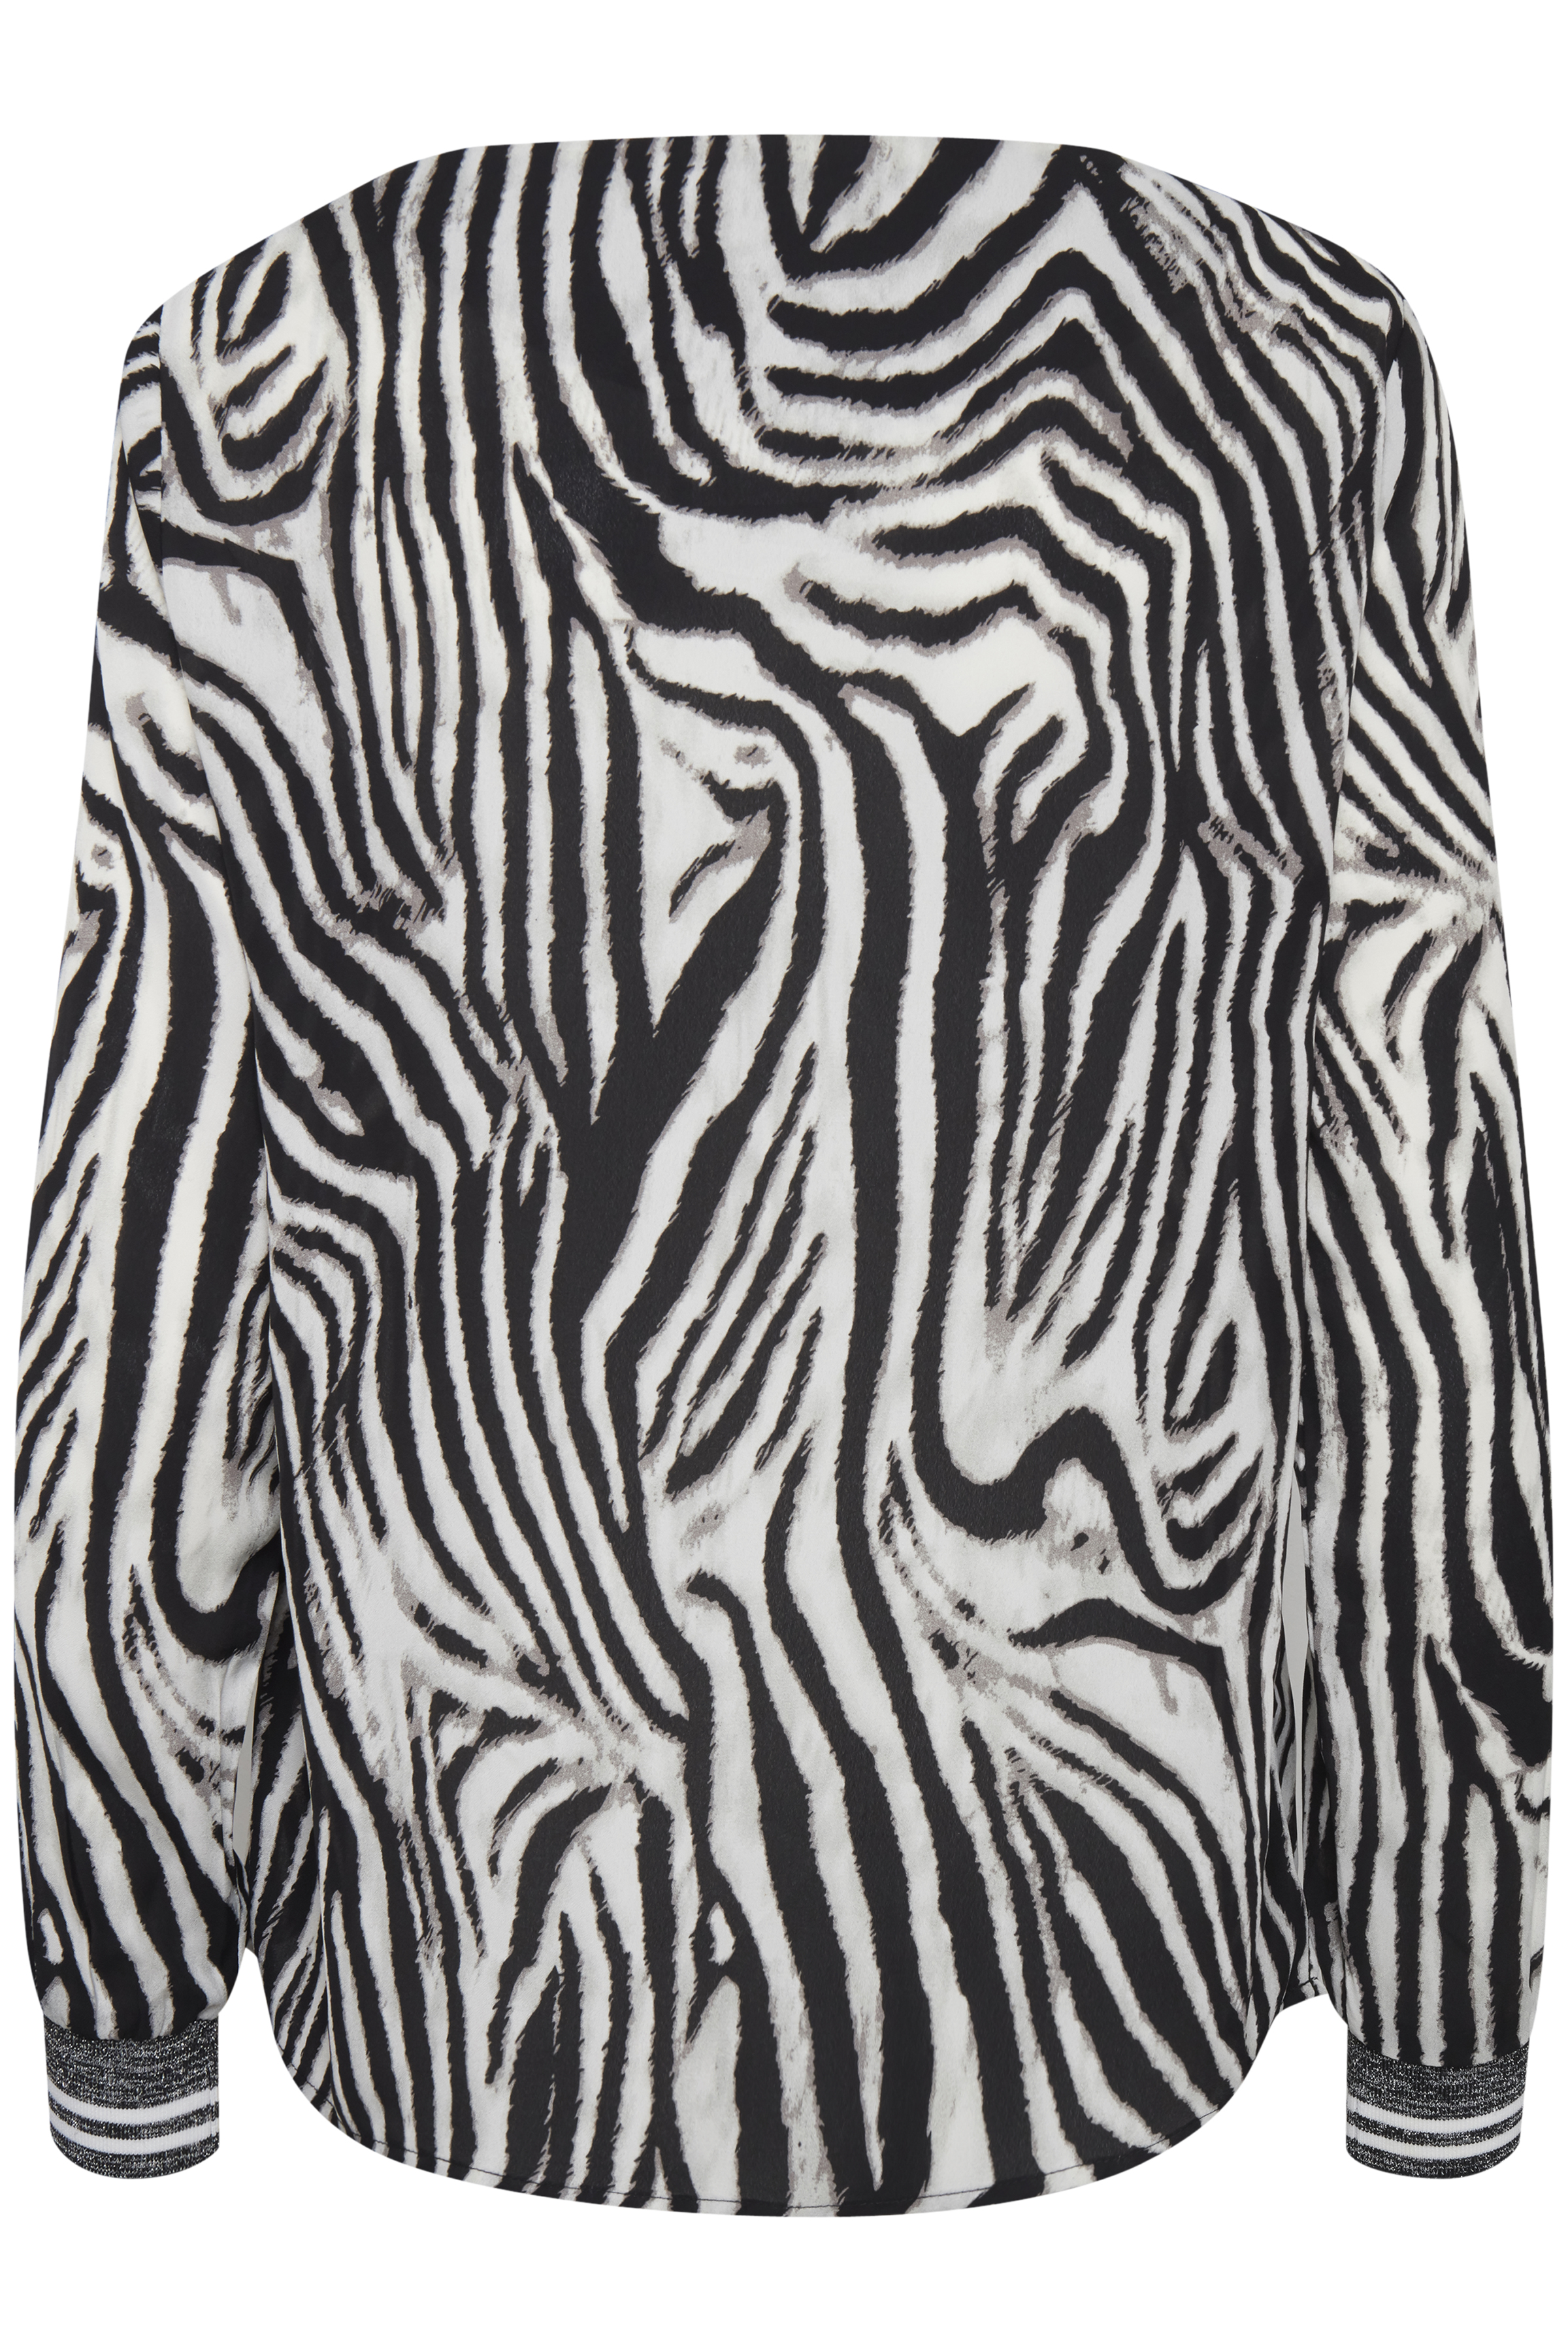 Zebra combi 1  from b.young – Buy Zebra combi 1  from size 34-42 here